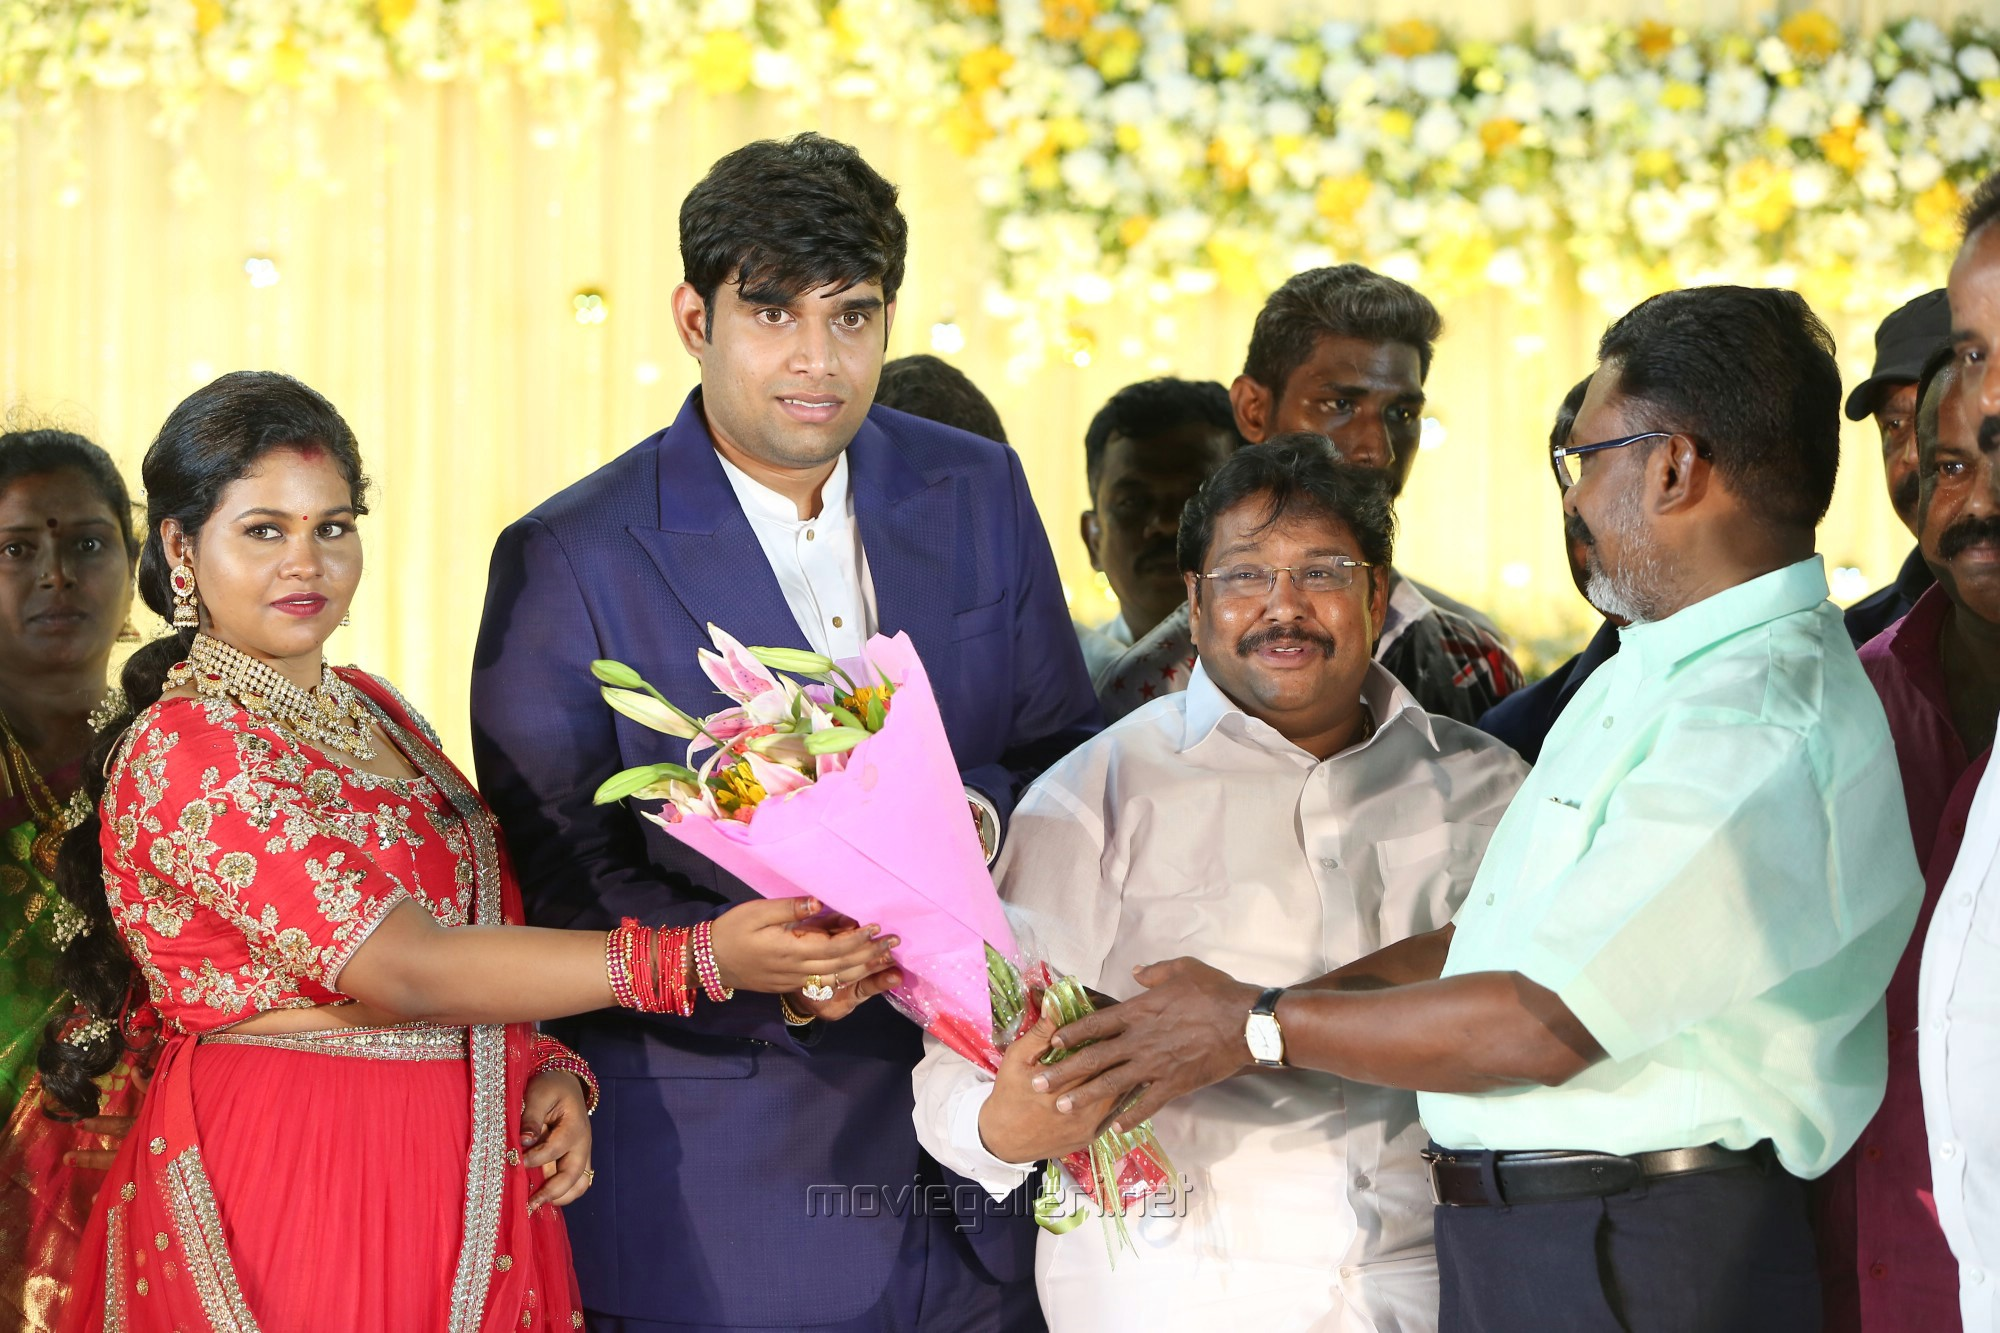 Thol Thirumavalavan @ Salem RR Briyani Tamilselvan daughter Wedding Reception Stills